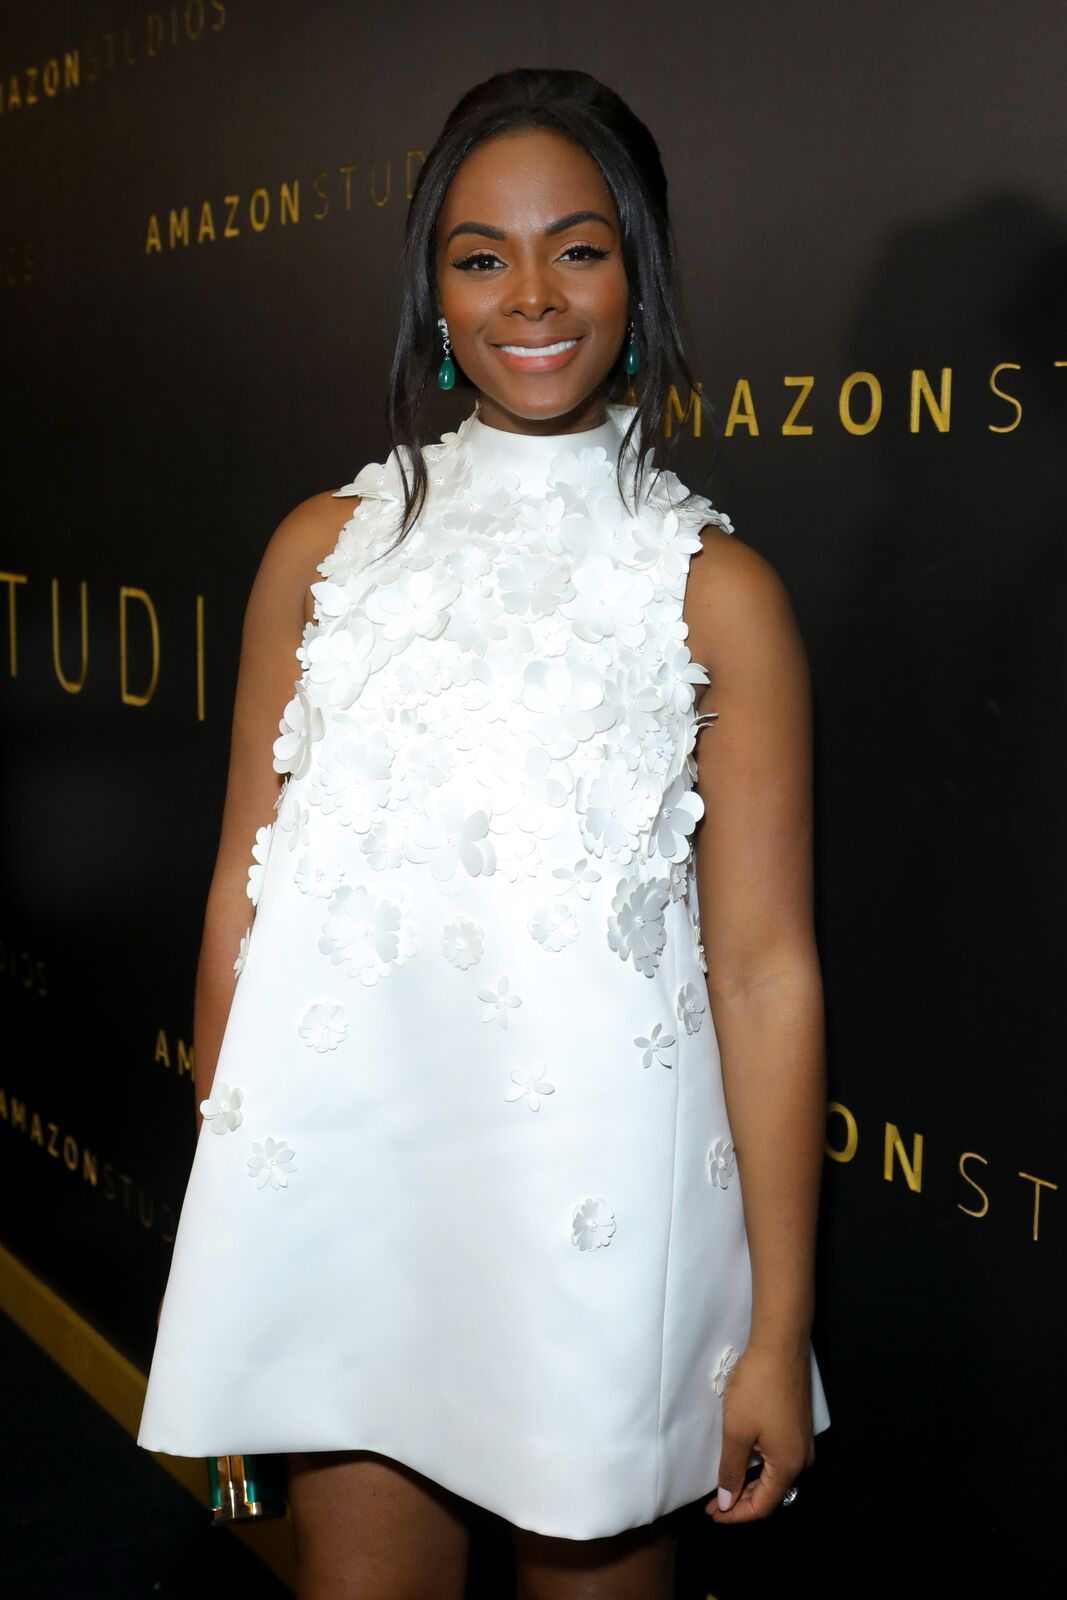 Tika Sumpter attends the Amazon Studios Golden Globes After Party at The Beverly Hilton Hotel on January 05, 2020 | Photo: Getty Images